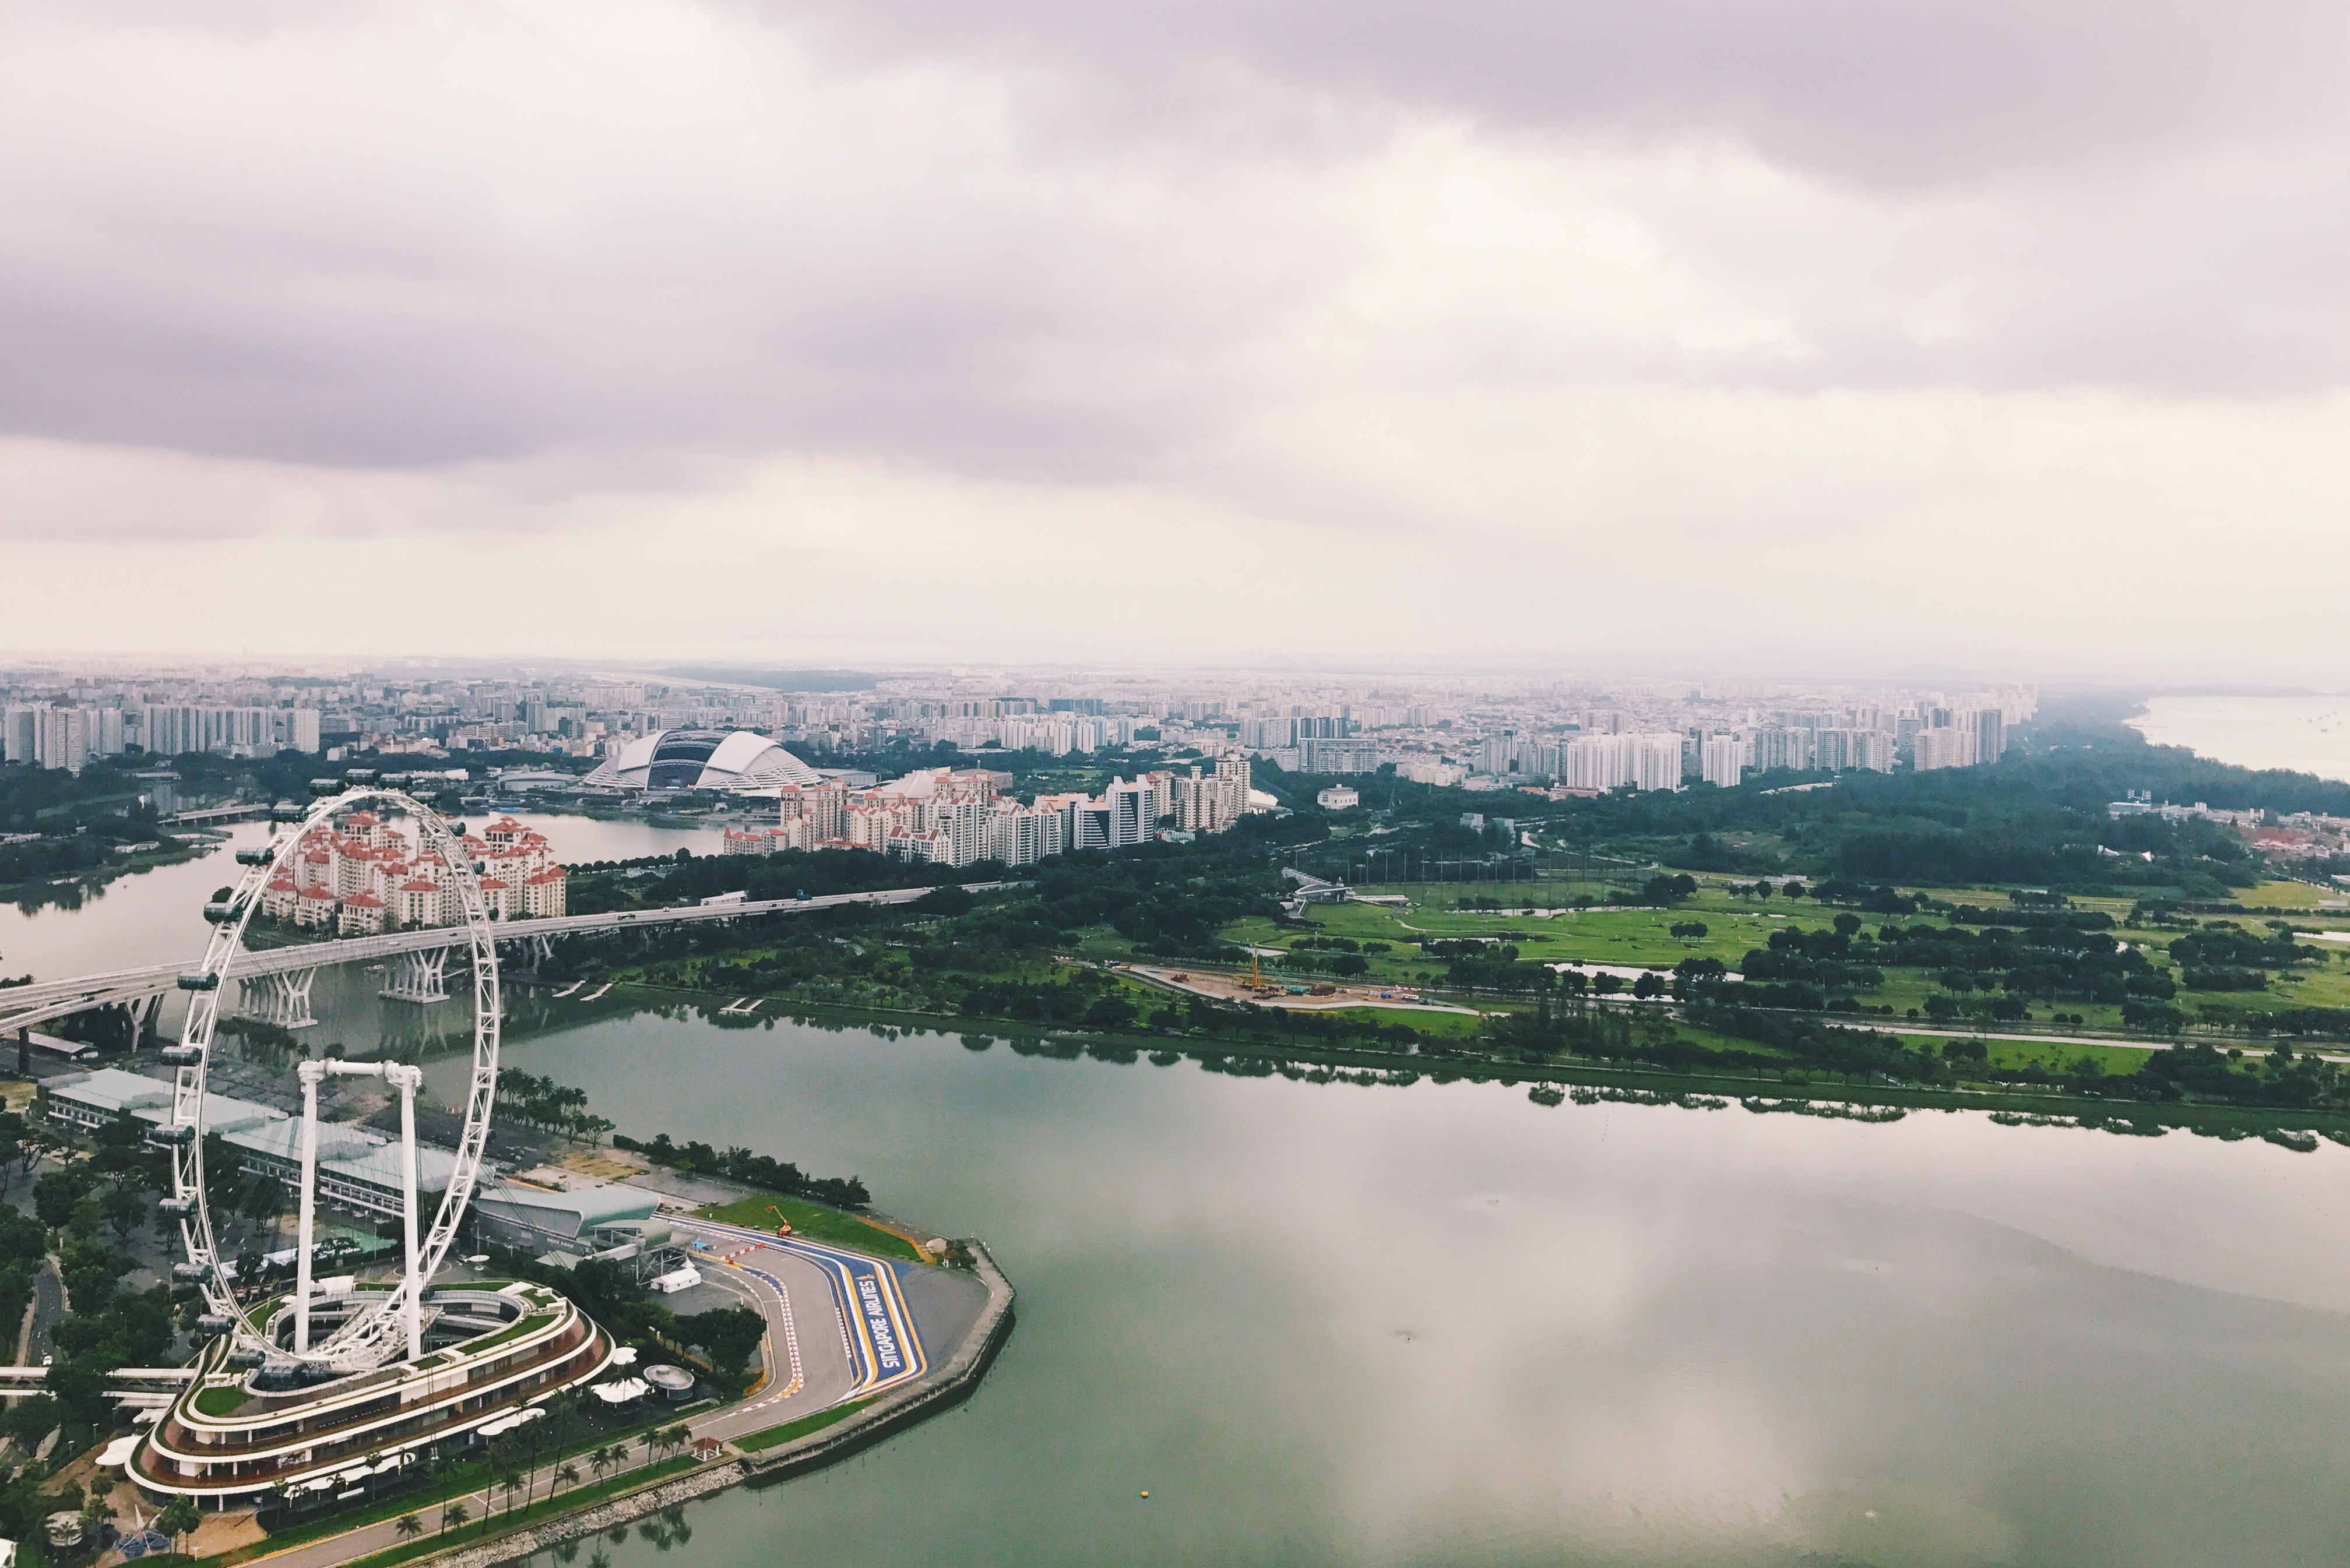 Singapore is now the 26th most expensive location for international executive standard accommodation in the world, falling just one spot from its position at 25th in last year's rankings